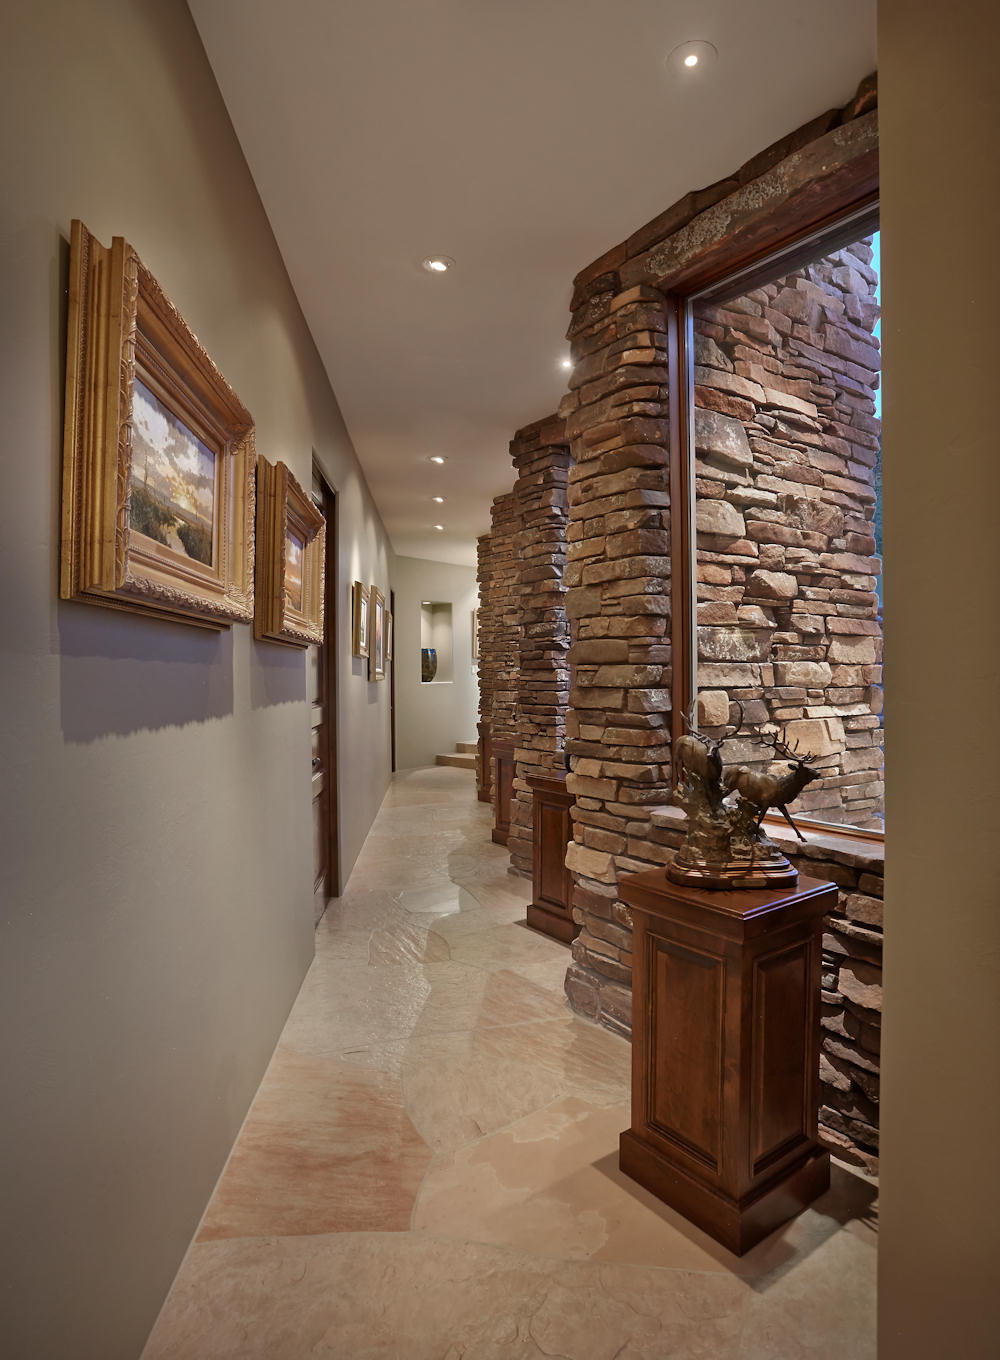 Contemporary Art Hall Natural Stone Columns Anchor The Hallway And Frame Windows To Allow Ample